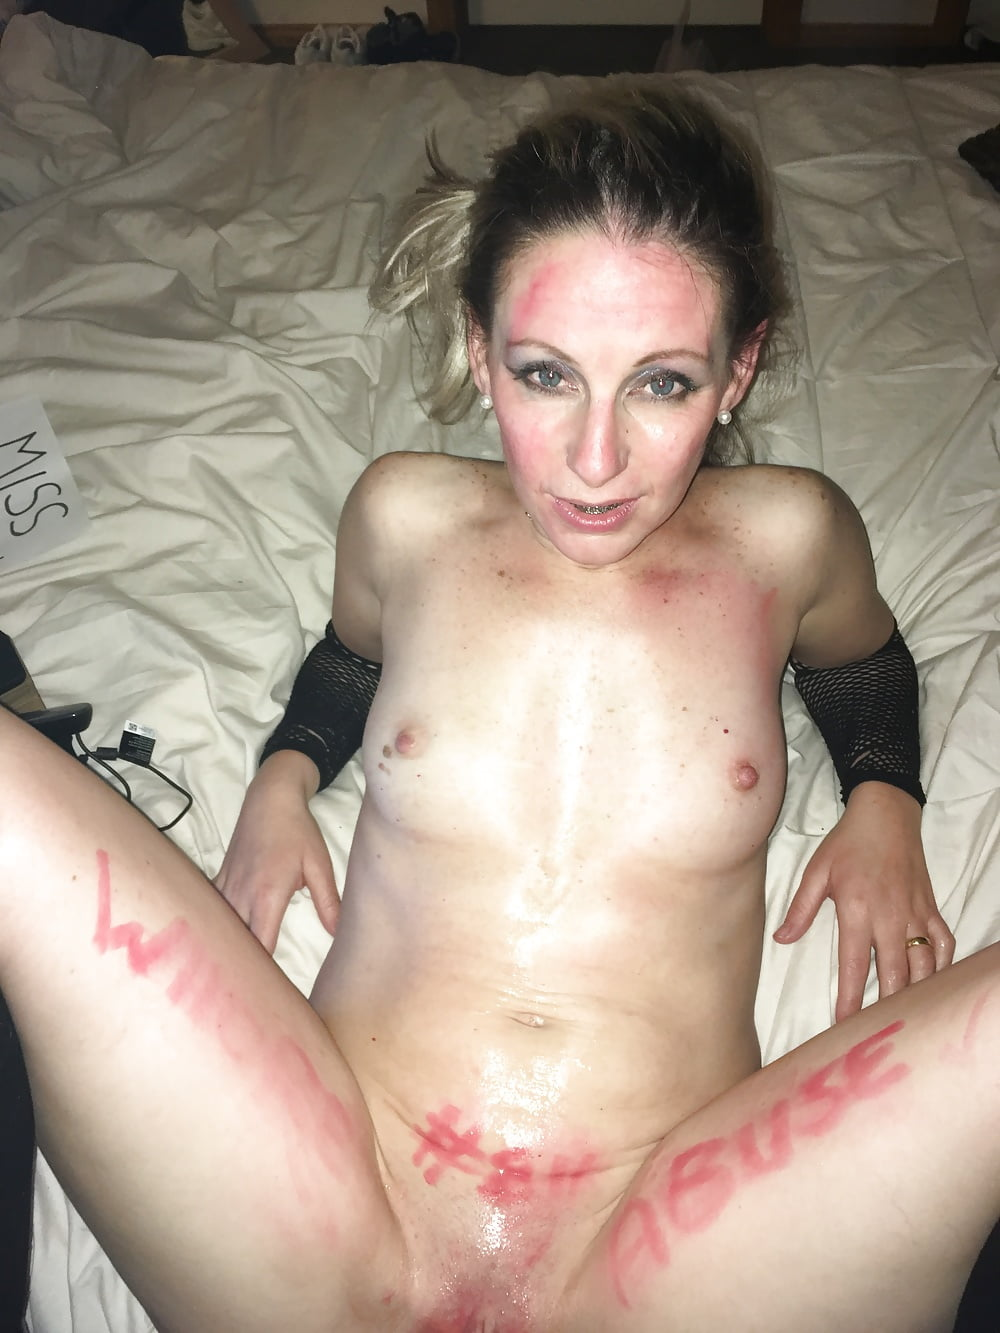 Submissive wife used by a stranger chosen by pervert hubby